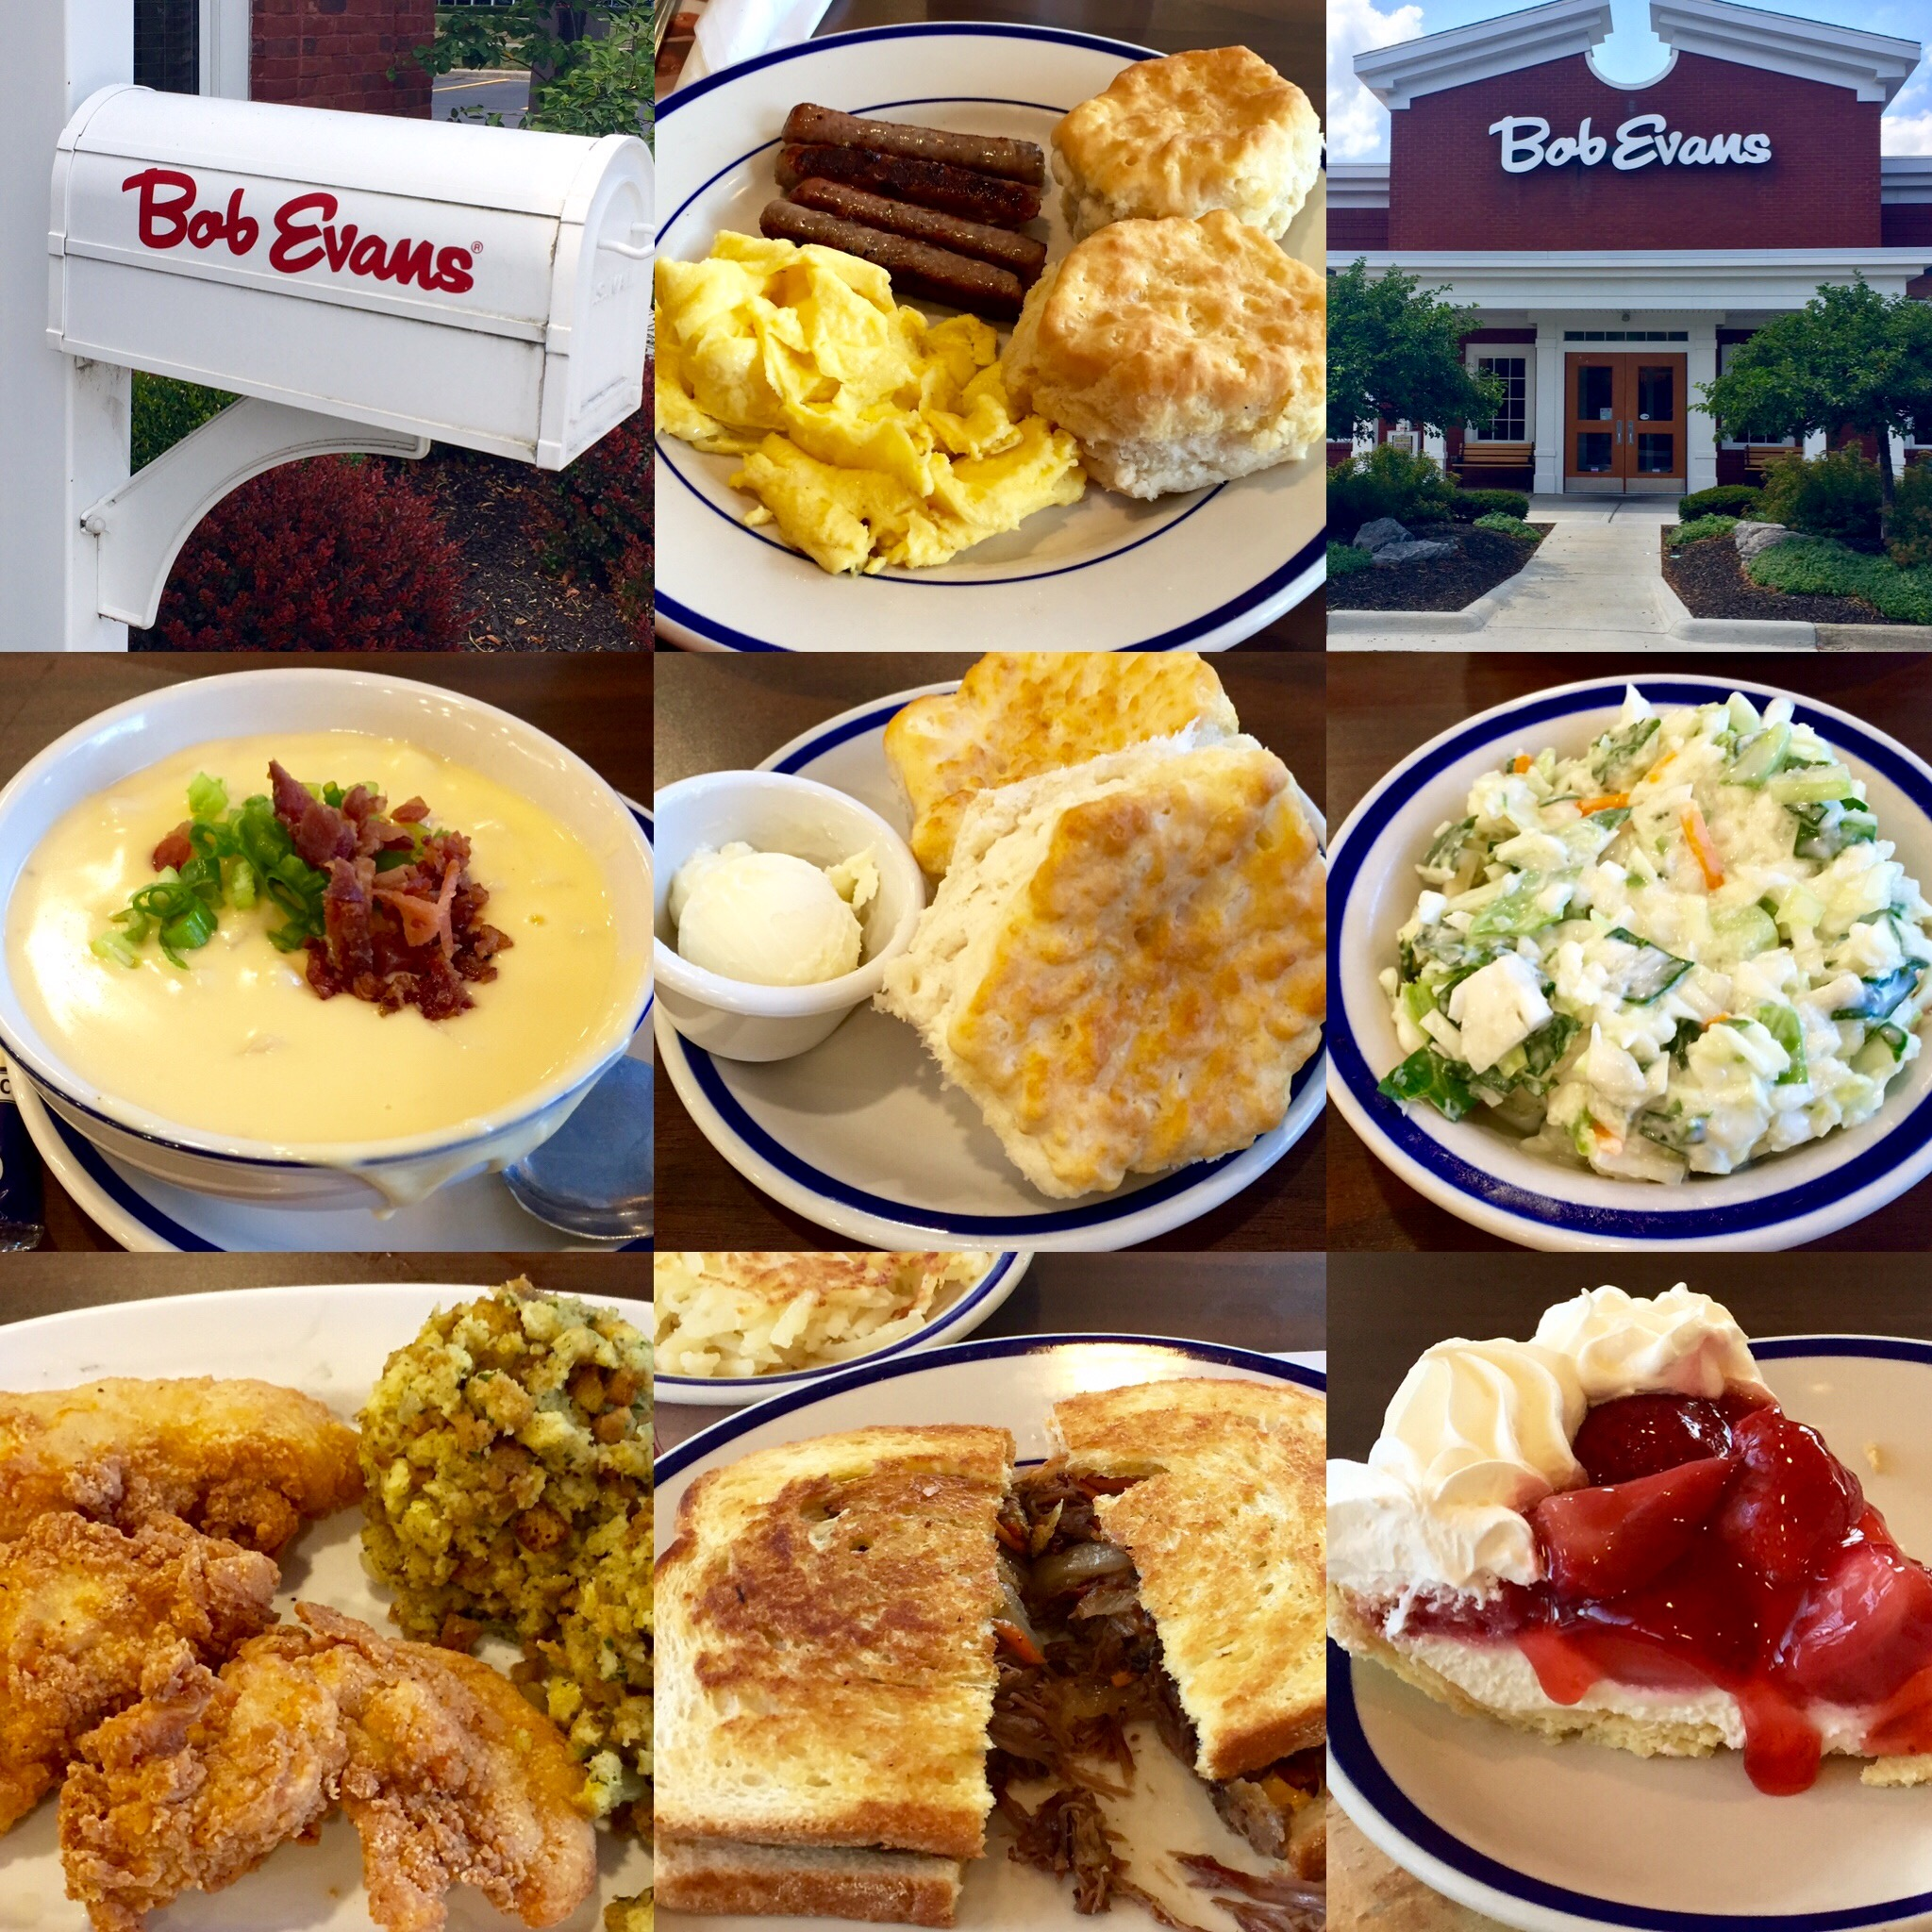 Bob Evans: Down on the Farm